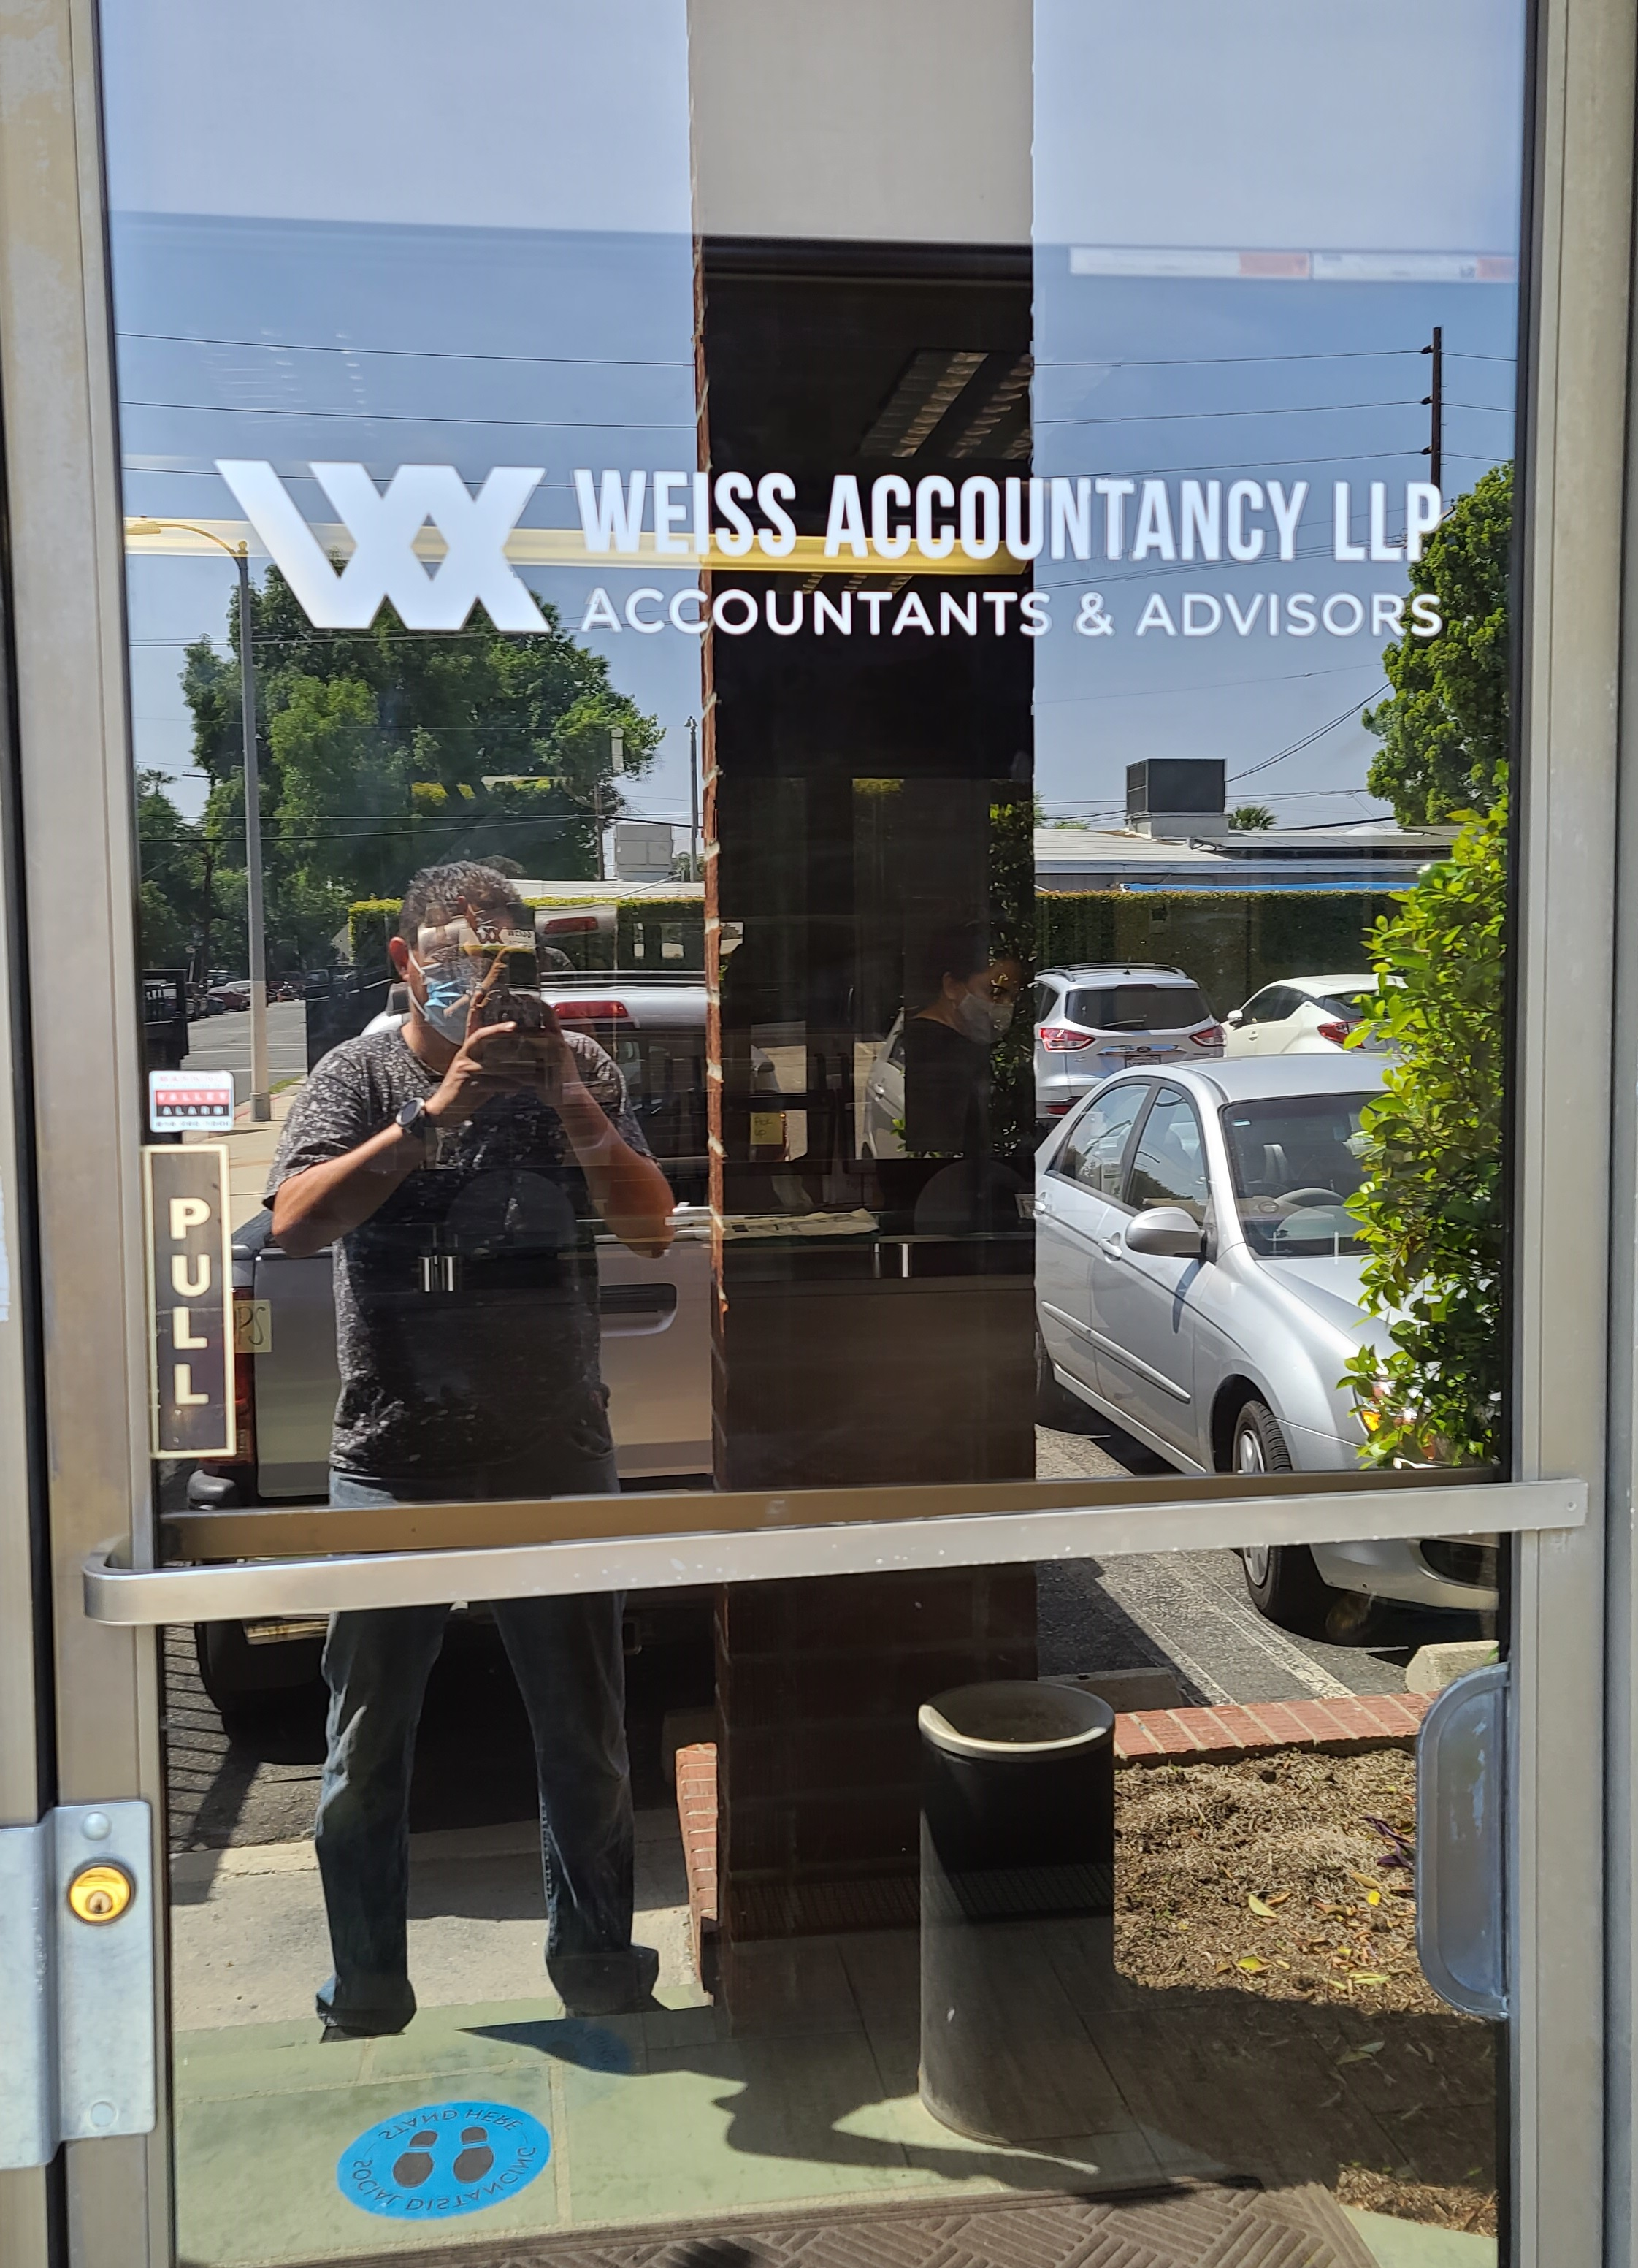 More signs made and installed for Weiss Accountancy. This time it is a window graphic business sign package that thoroughly decorates their Van Nuys office.